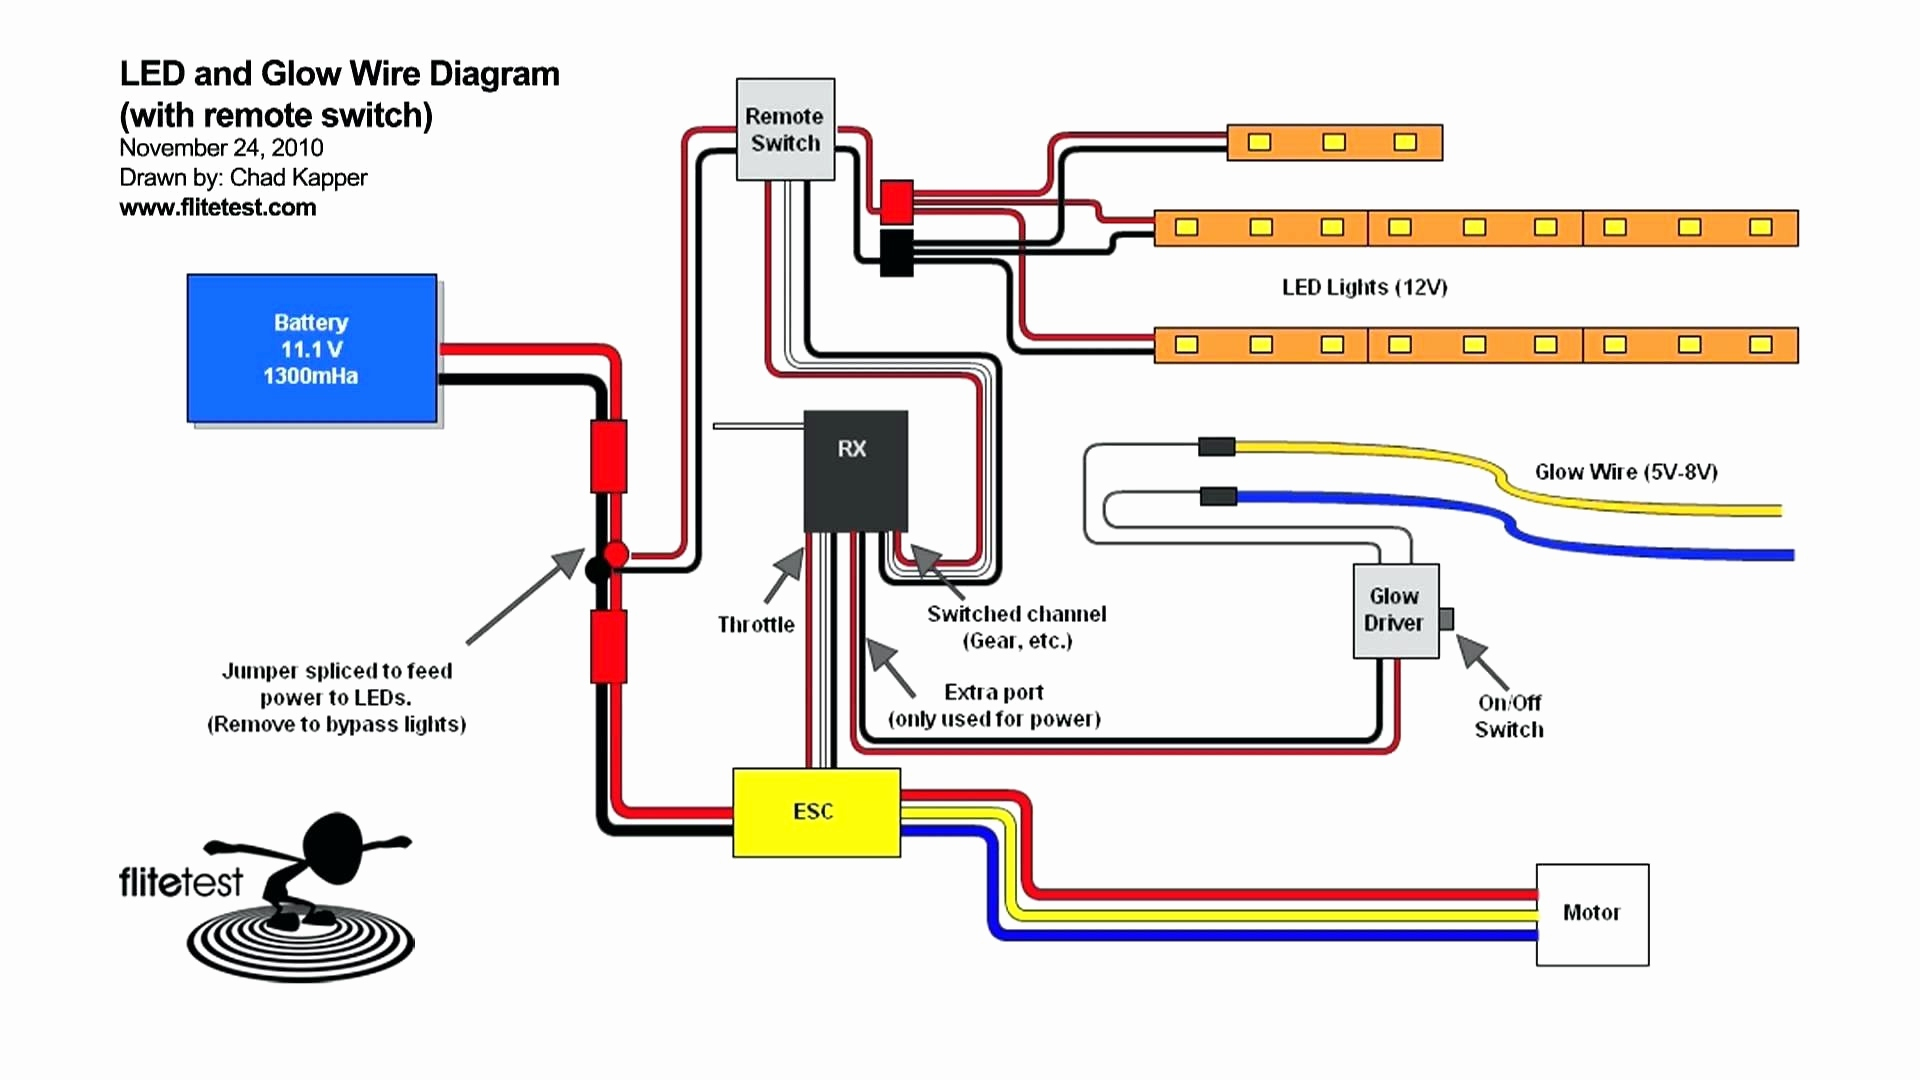 Led Light 12V 3 Wire Wiring Diagram | Wiring Diagram - Trailer Wiring Diagram Led Lights